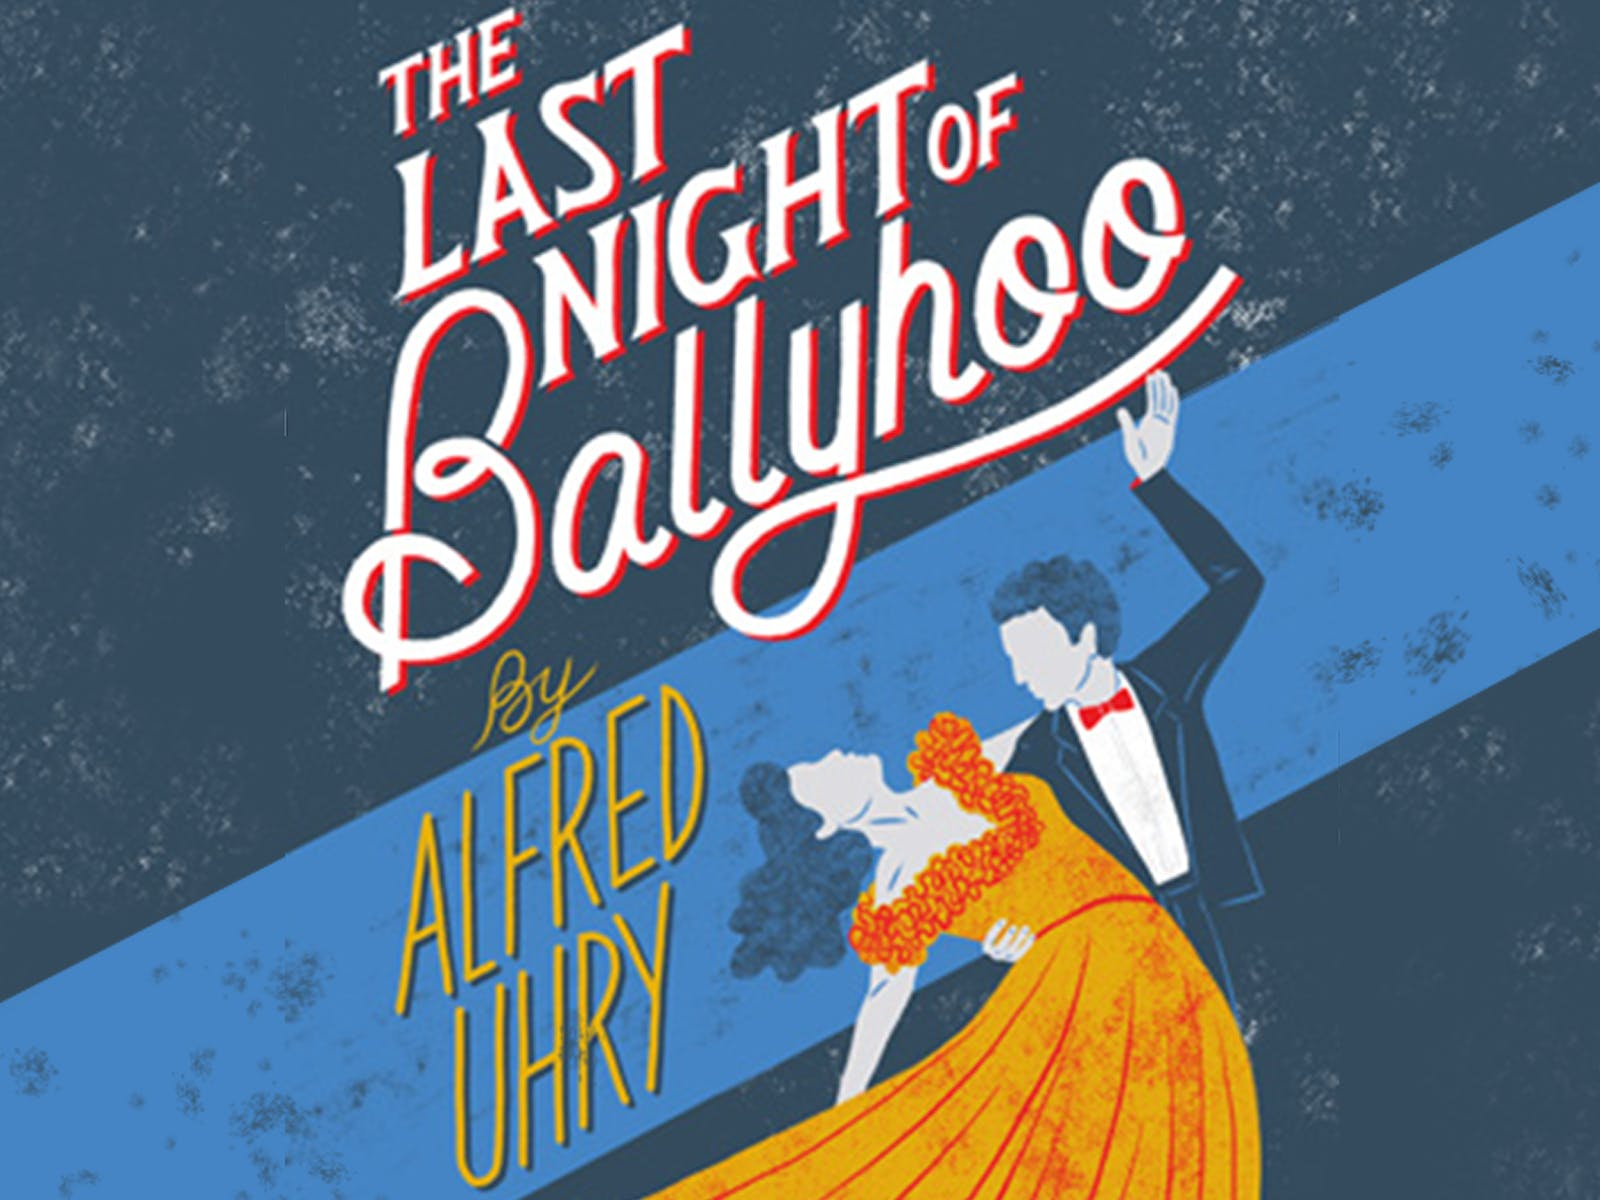 an analysis of the last night of ballyhoo play by alfred uhry The last night of ballyhoo helen hayes theater, ny 597 seats $45 top production: a jane harmon, nina keneally and liz oliver presentation of a play in two acts by alfred uhry.